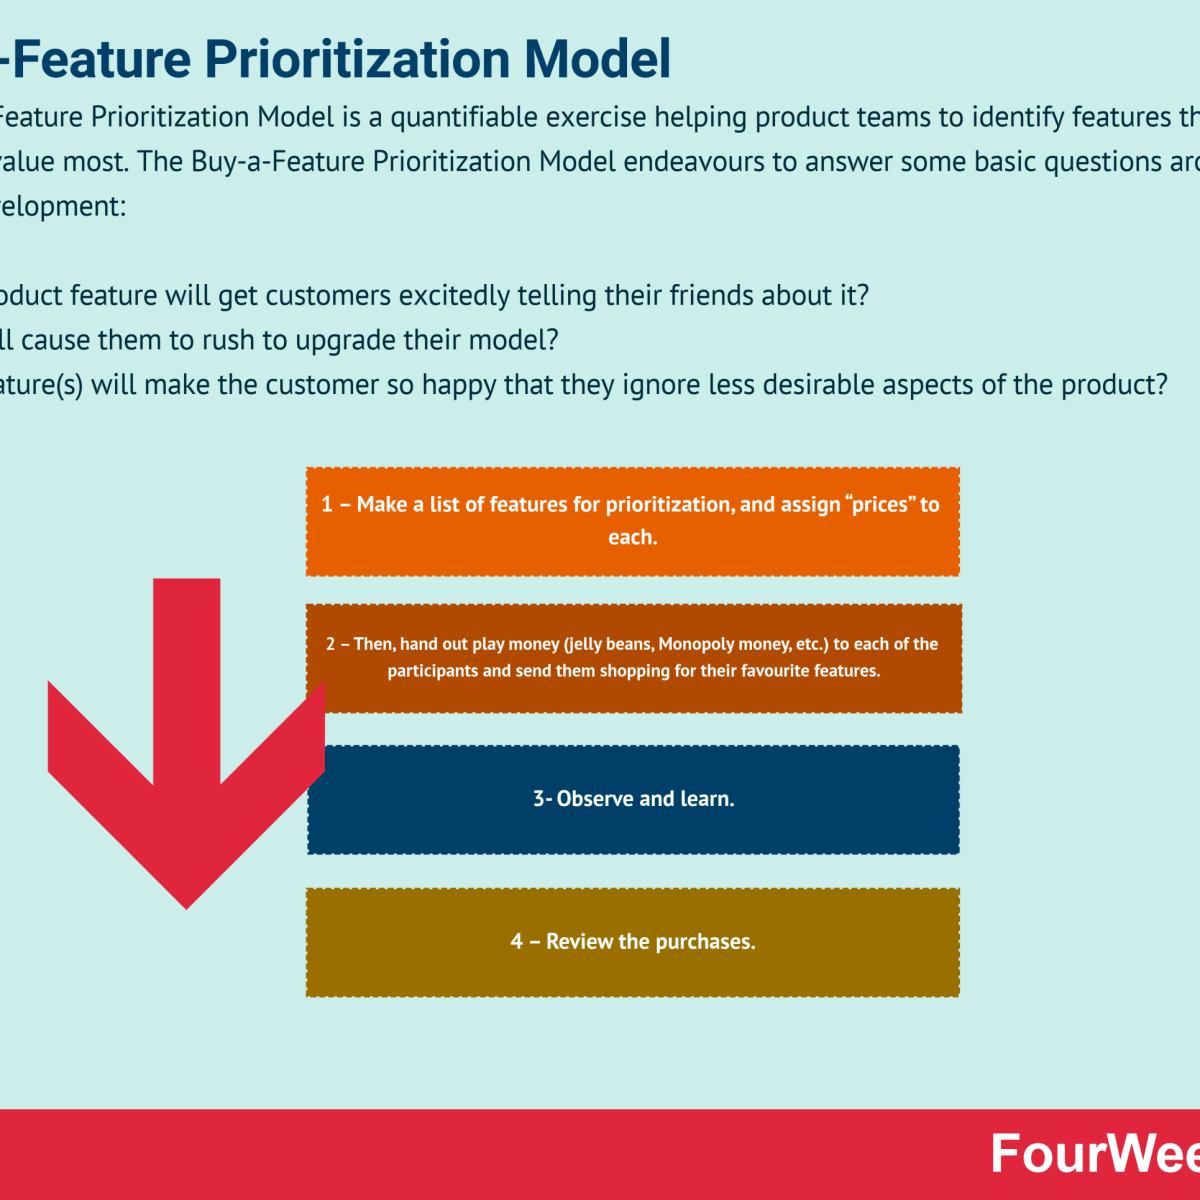 Buy-a-Feature Prioritization Model